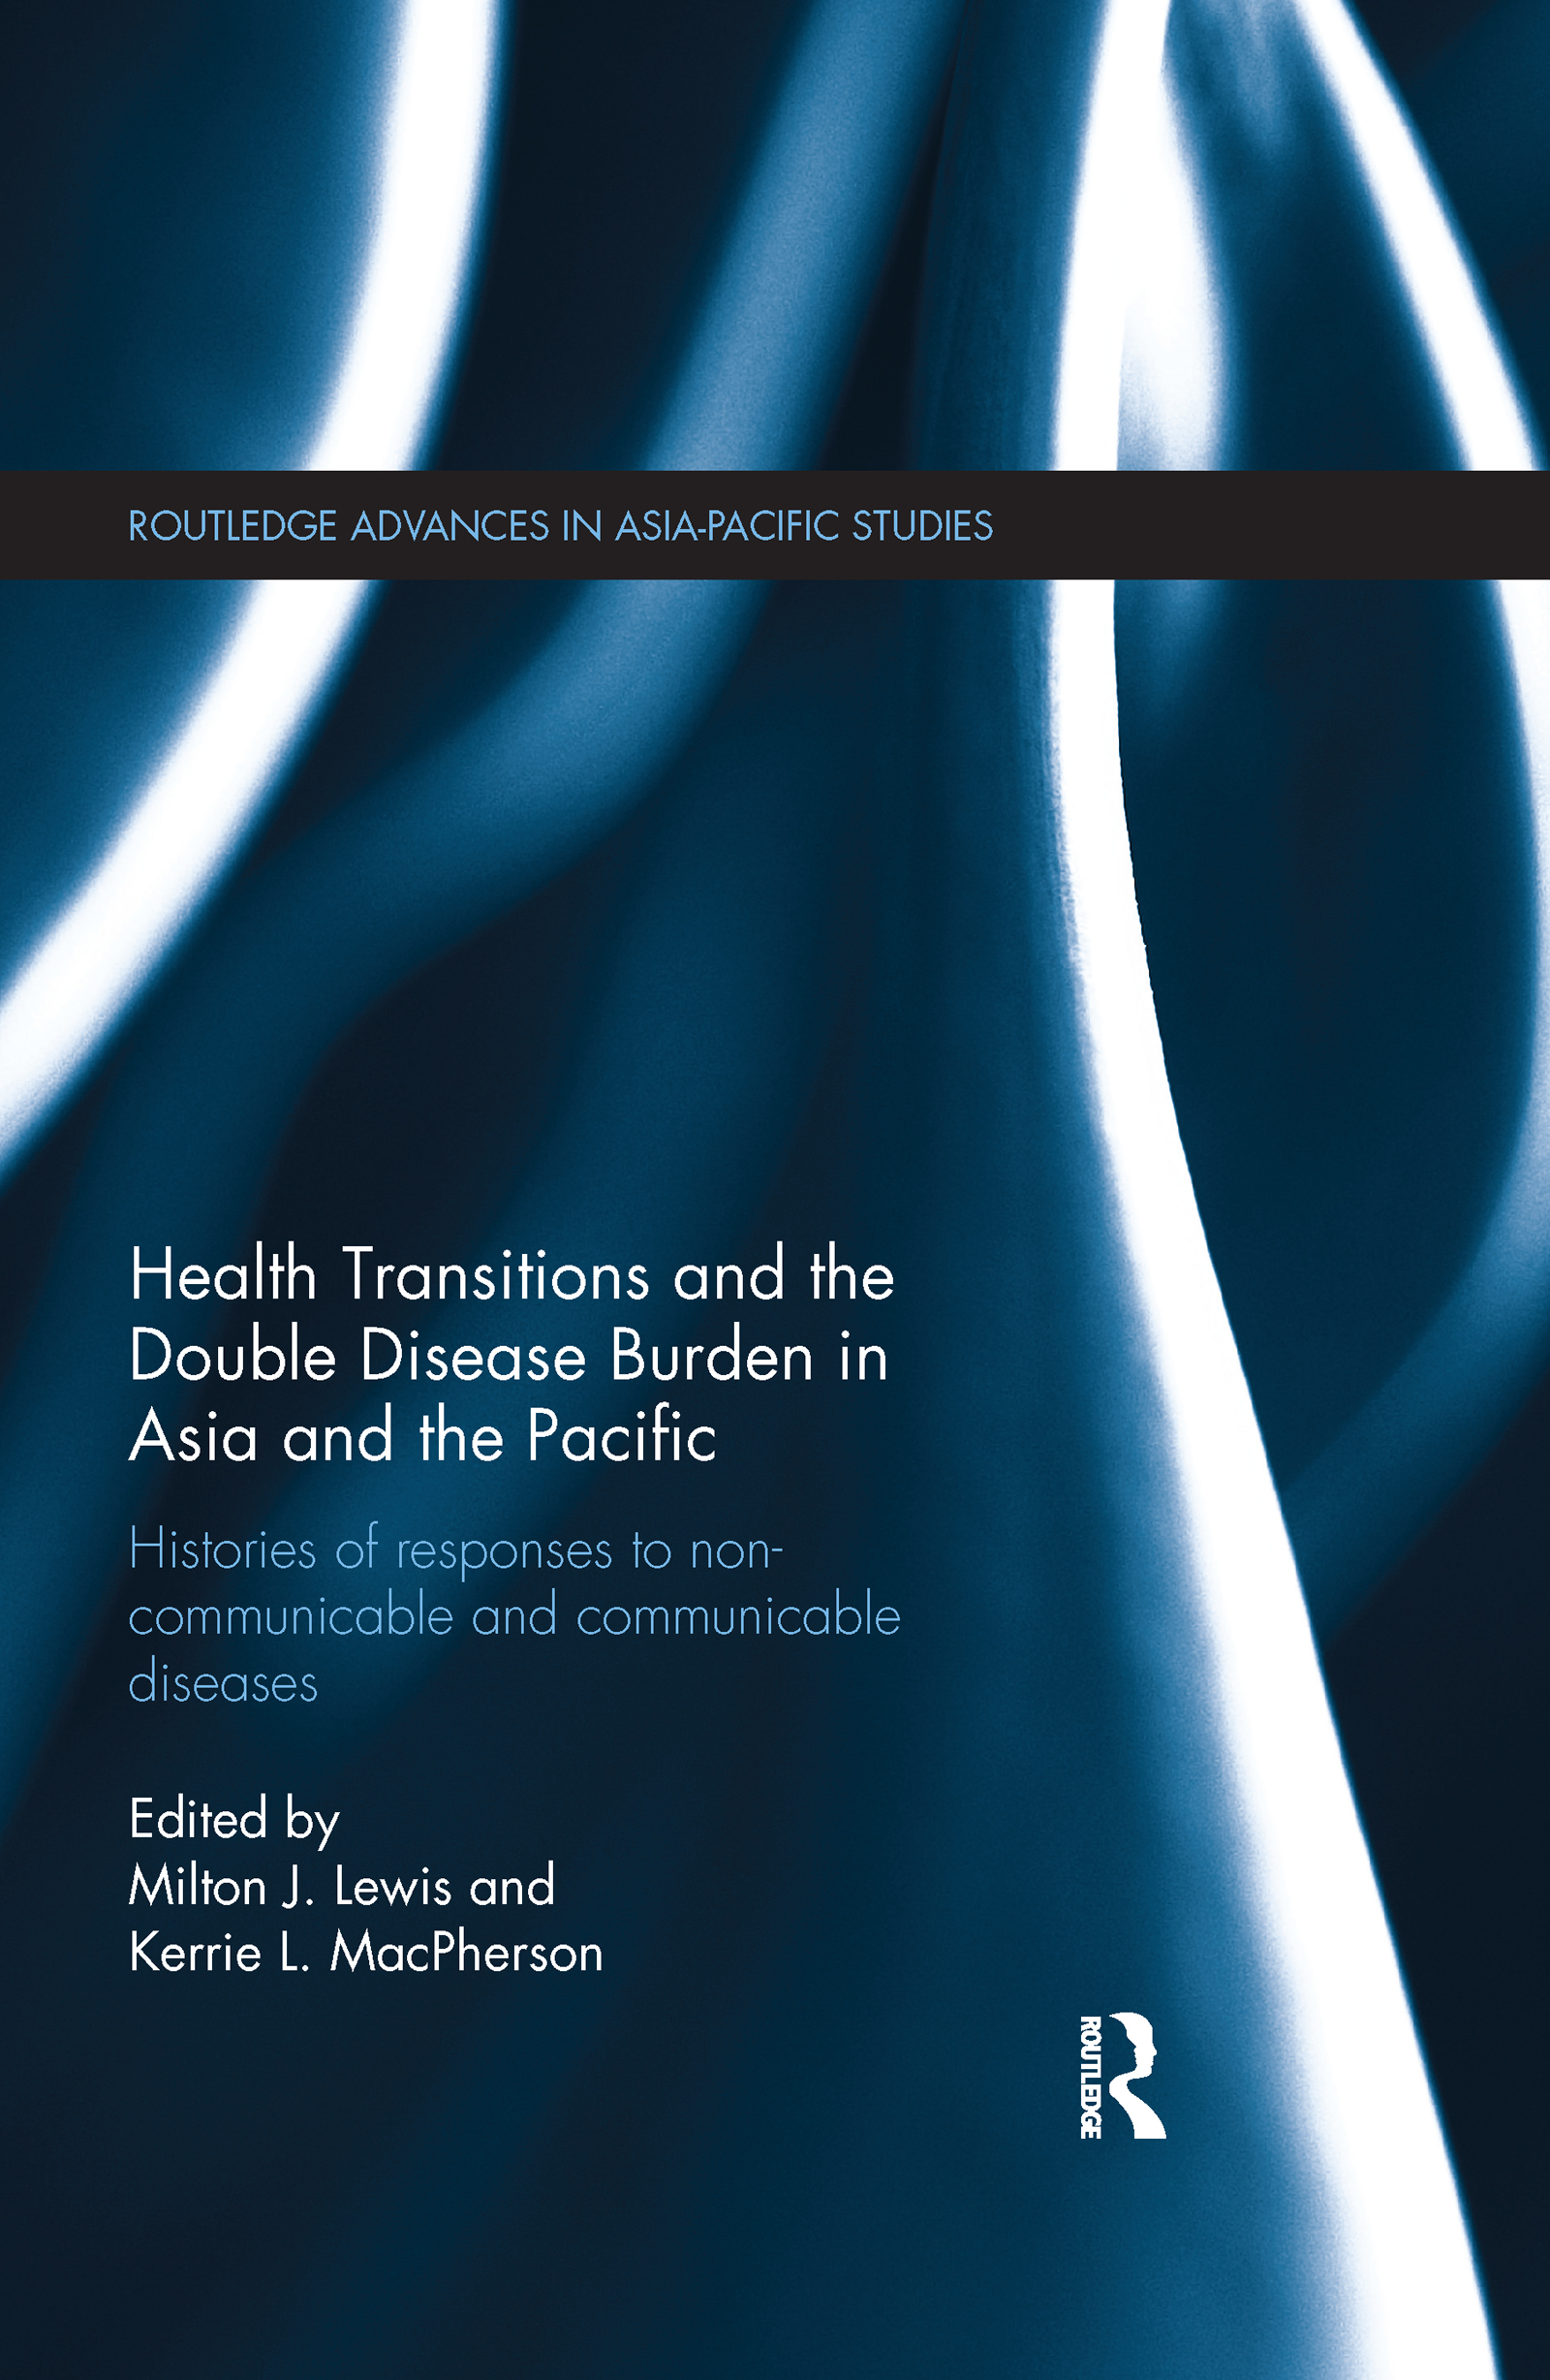 Health Transitions and the Double Disease Burden in Asia and the Pacific